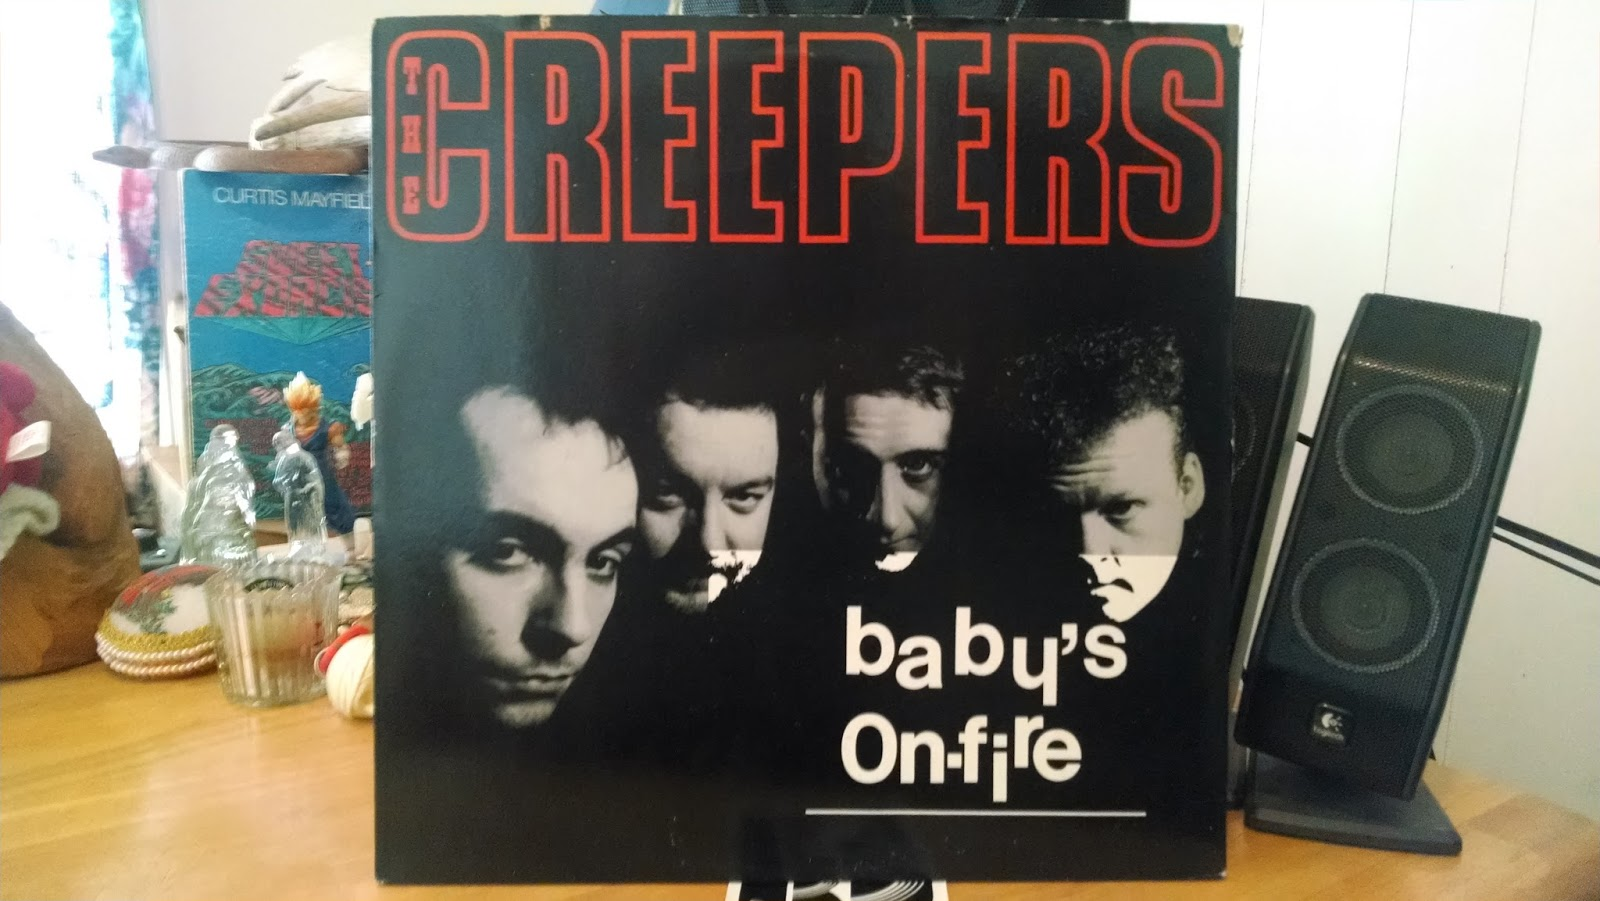 Creepers, The* Marc Riley with The Creepers - Gross Out